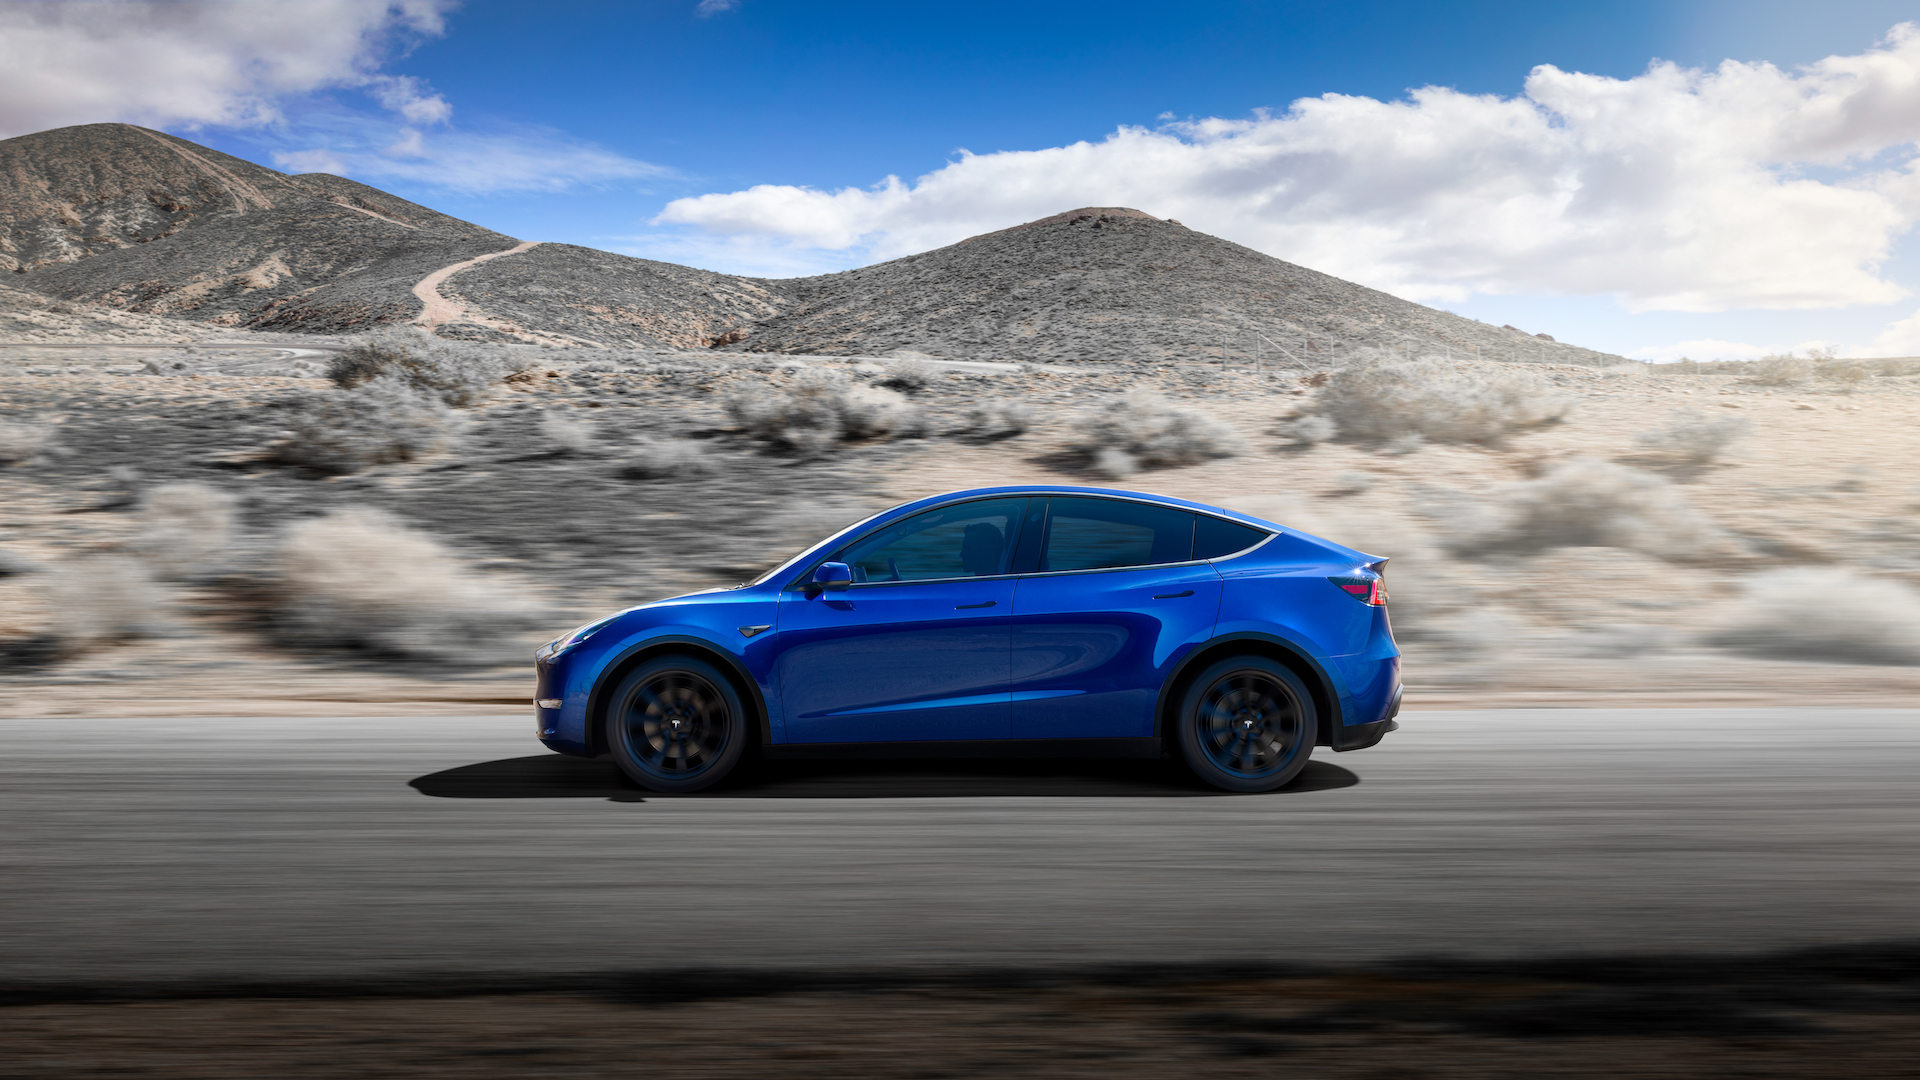 2021 Tesla Model Y side view